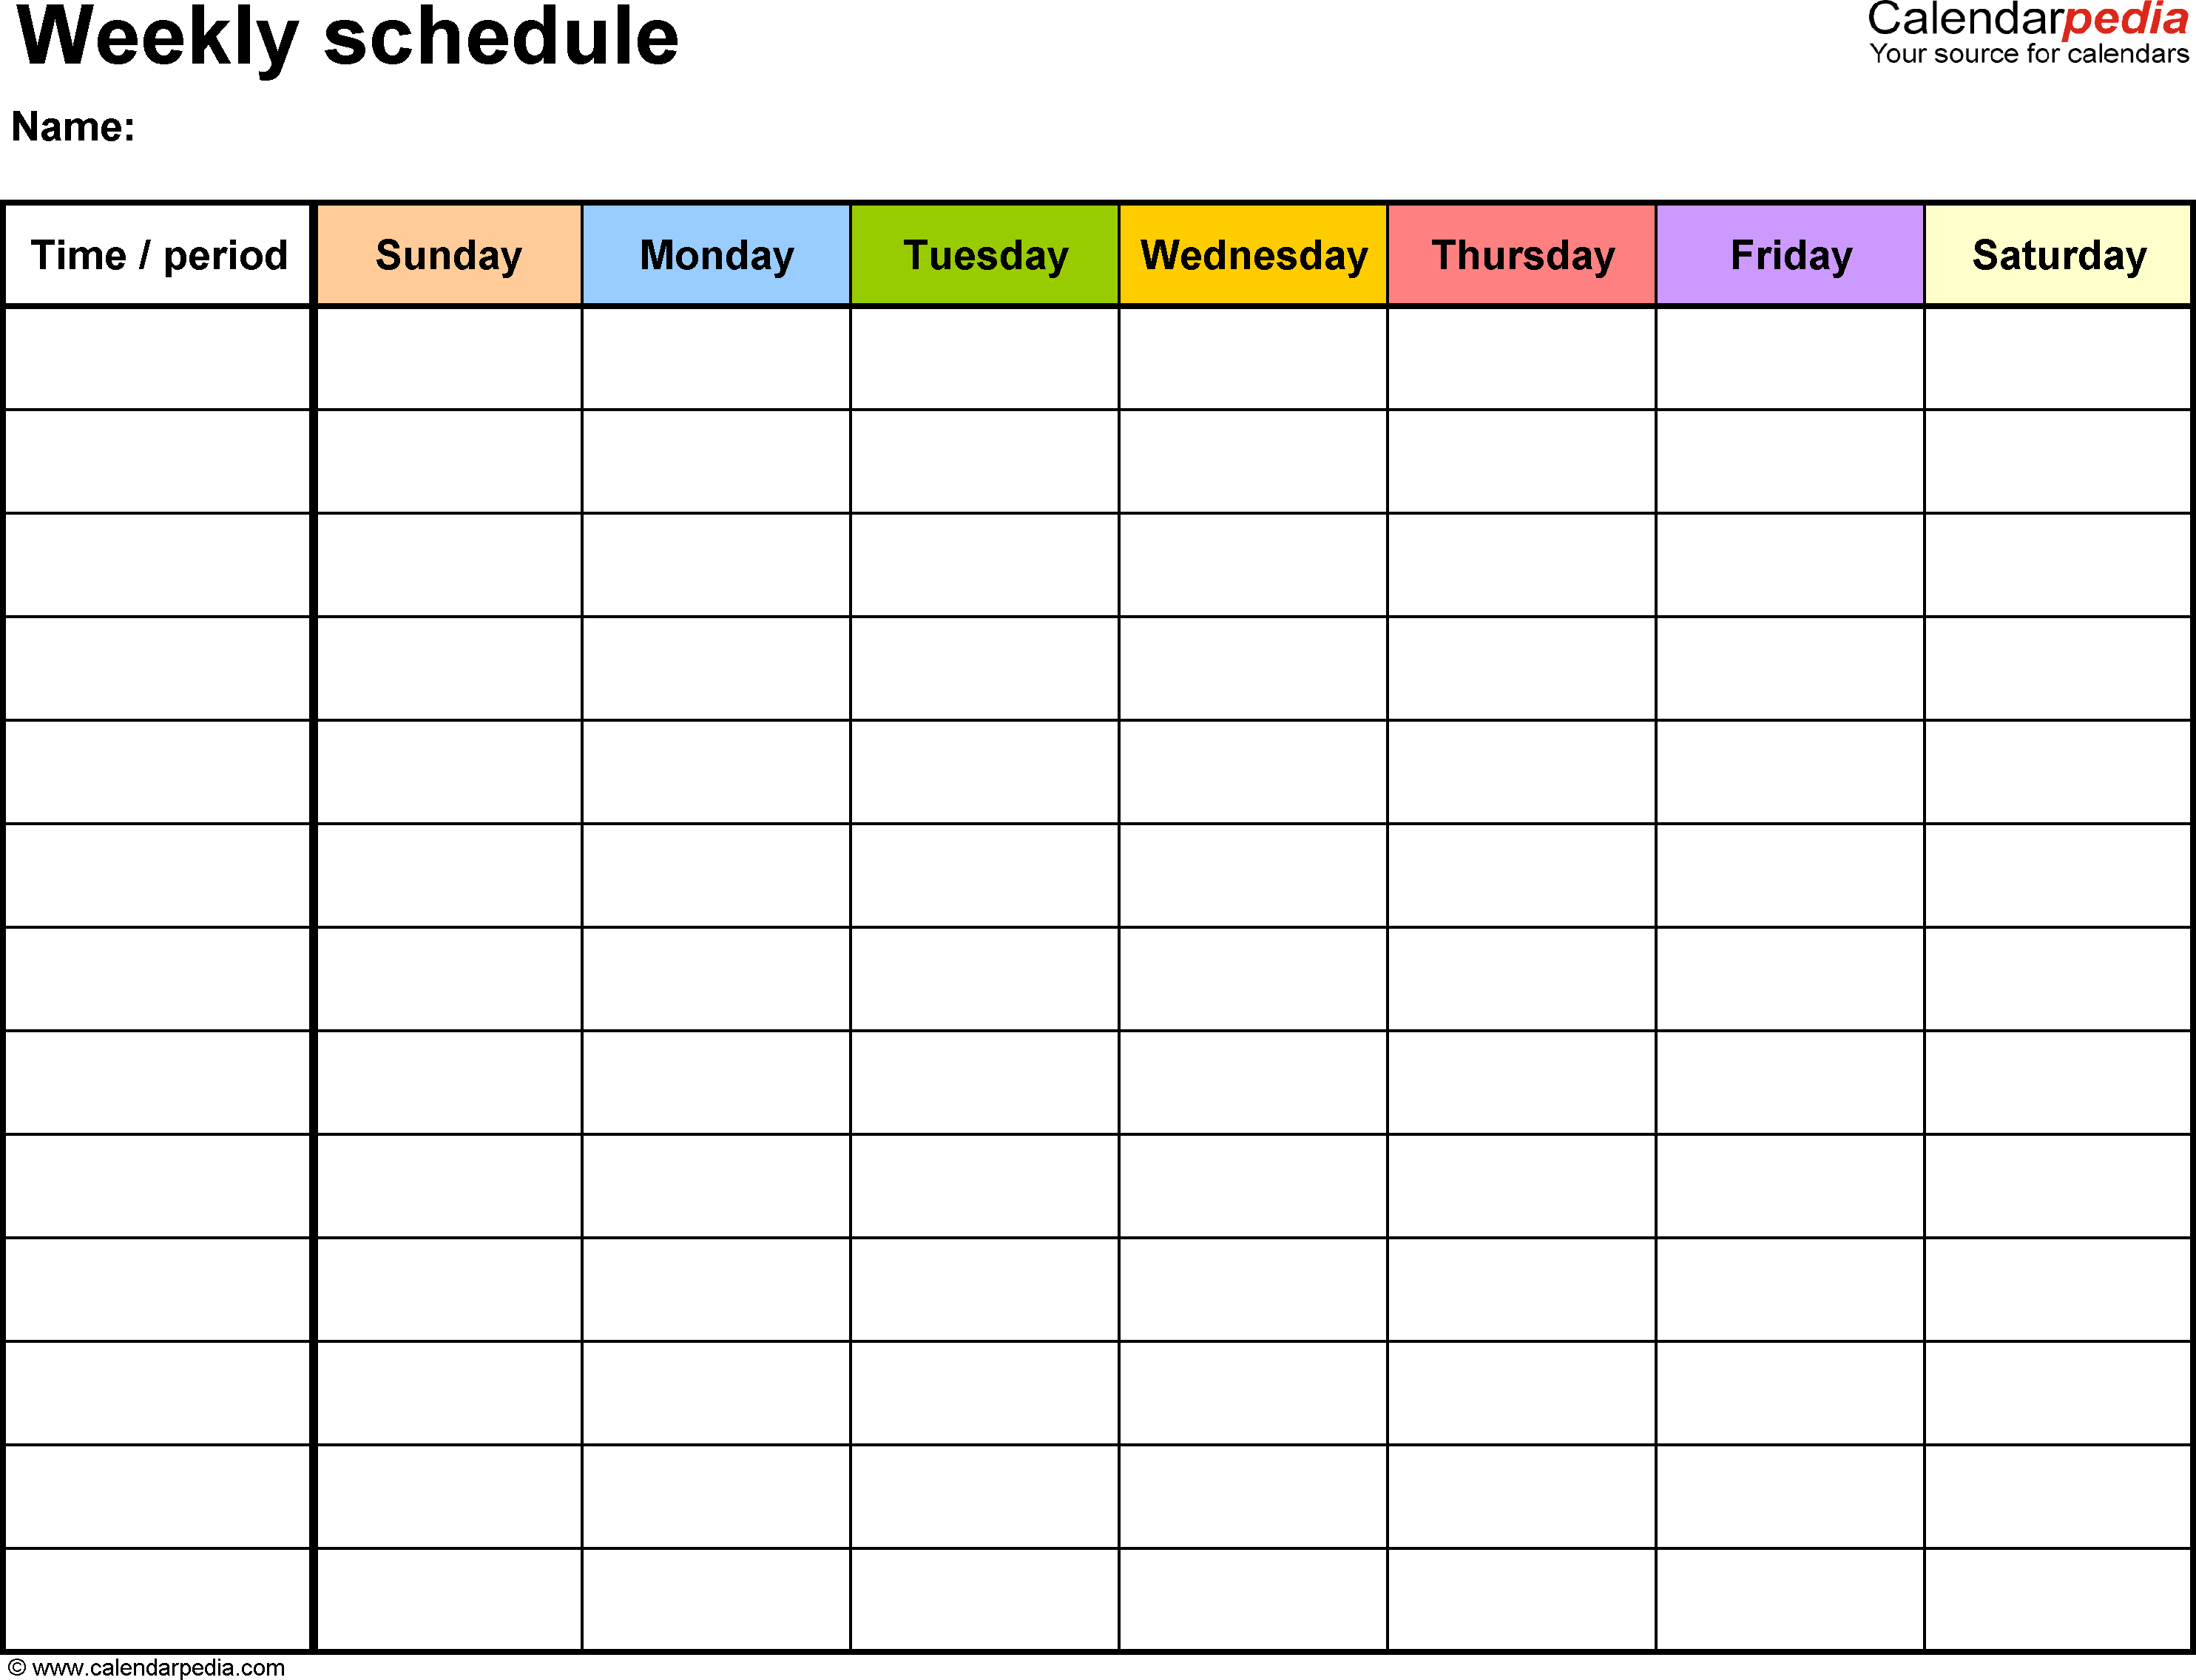 Weekly Schedule Template For Word Version 13 Landscape 1